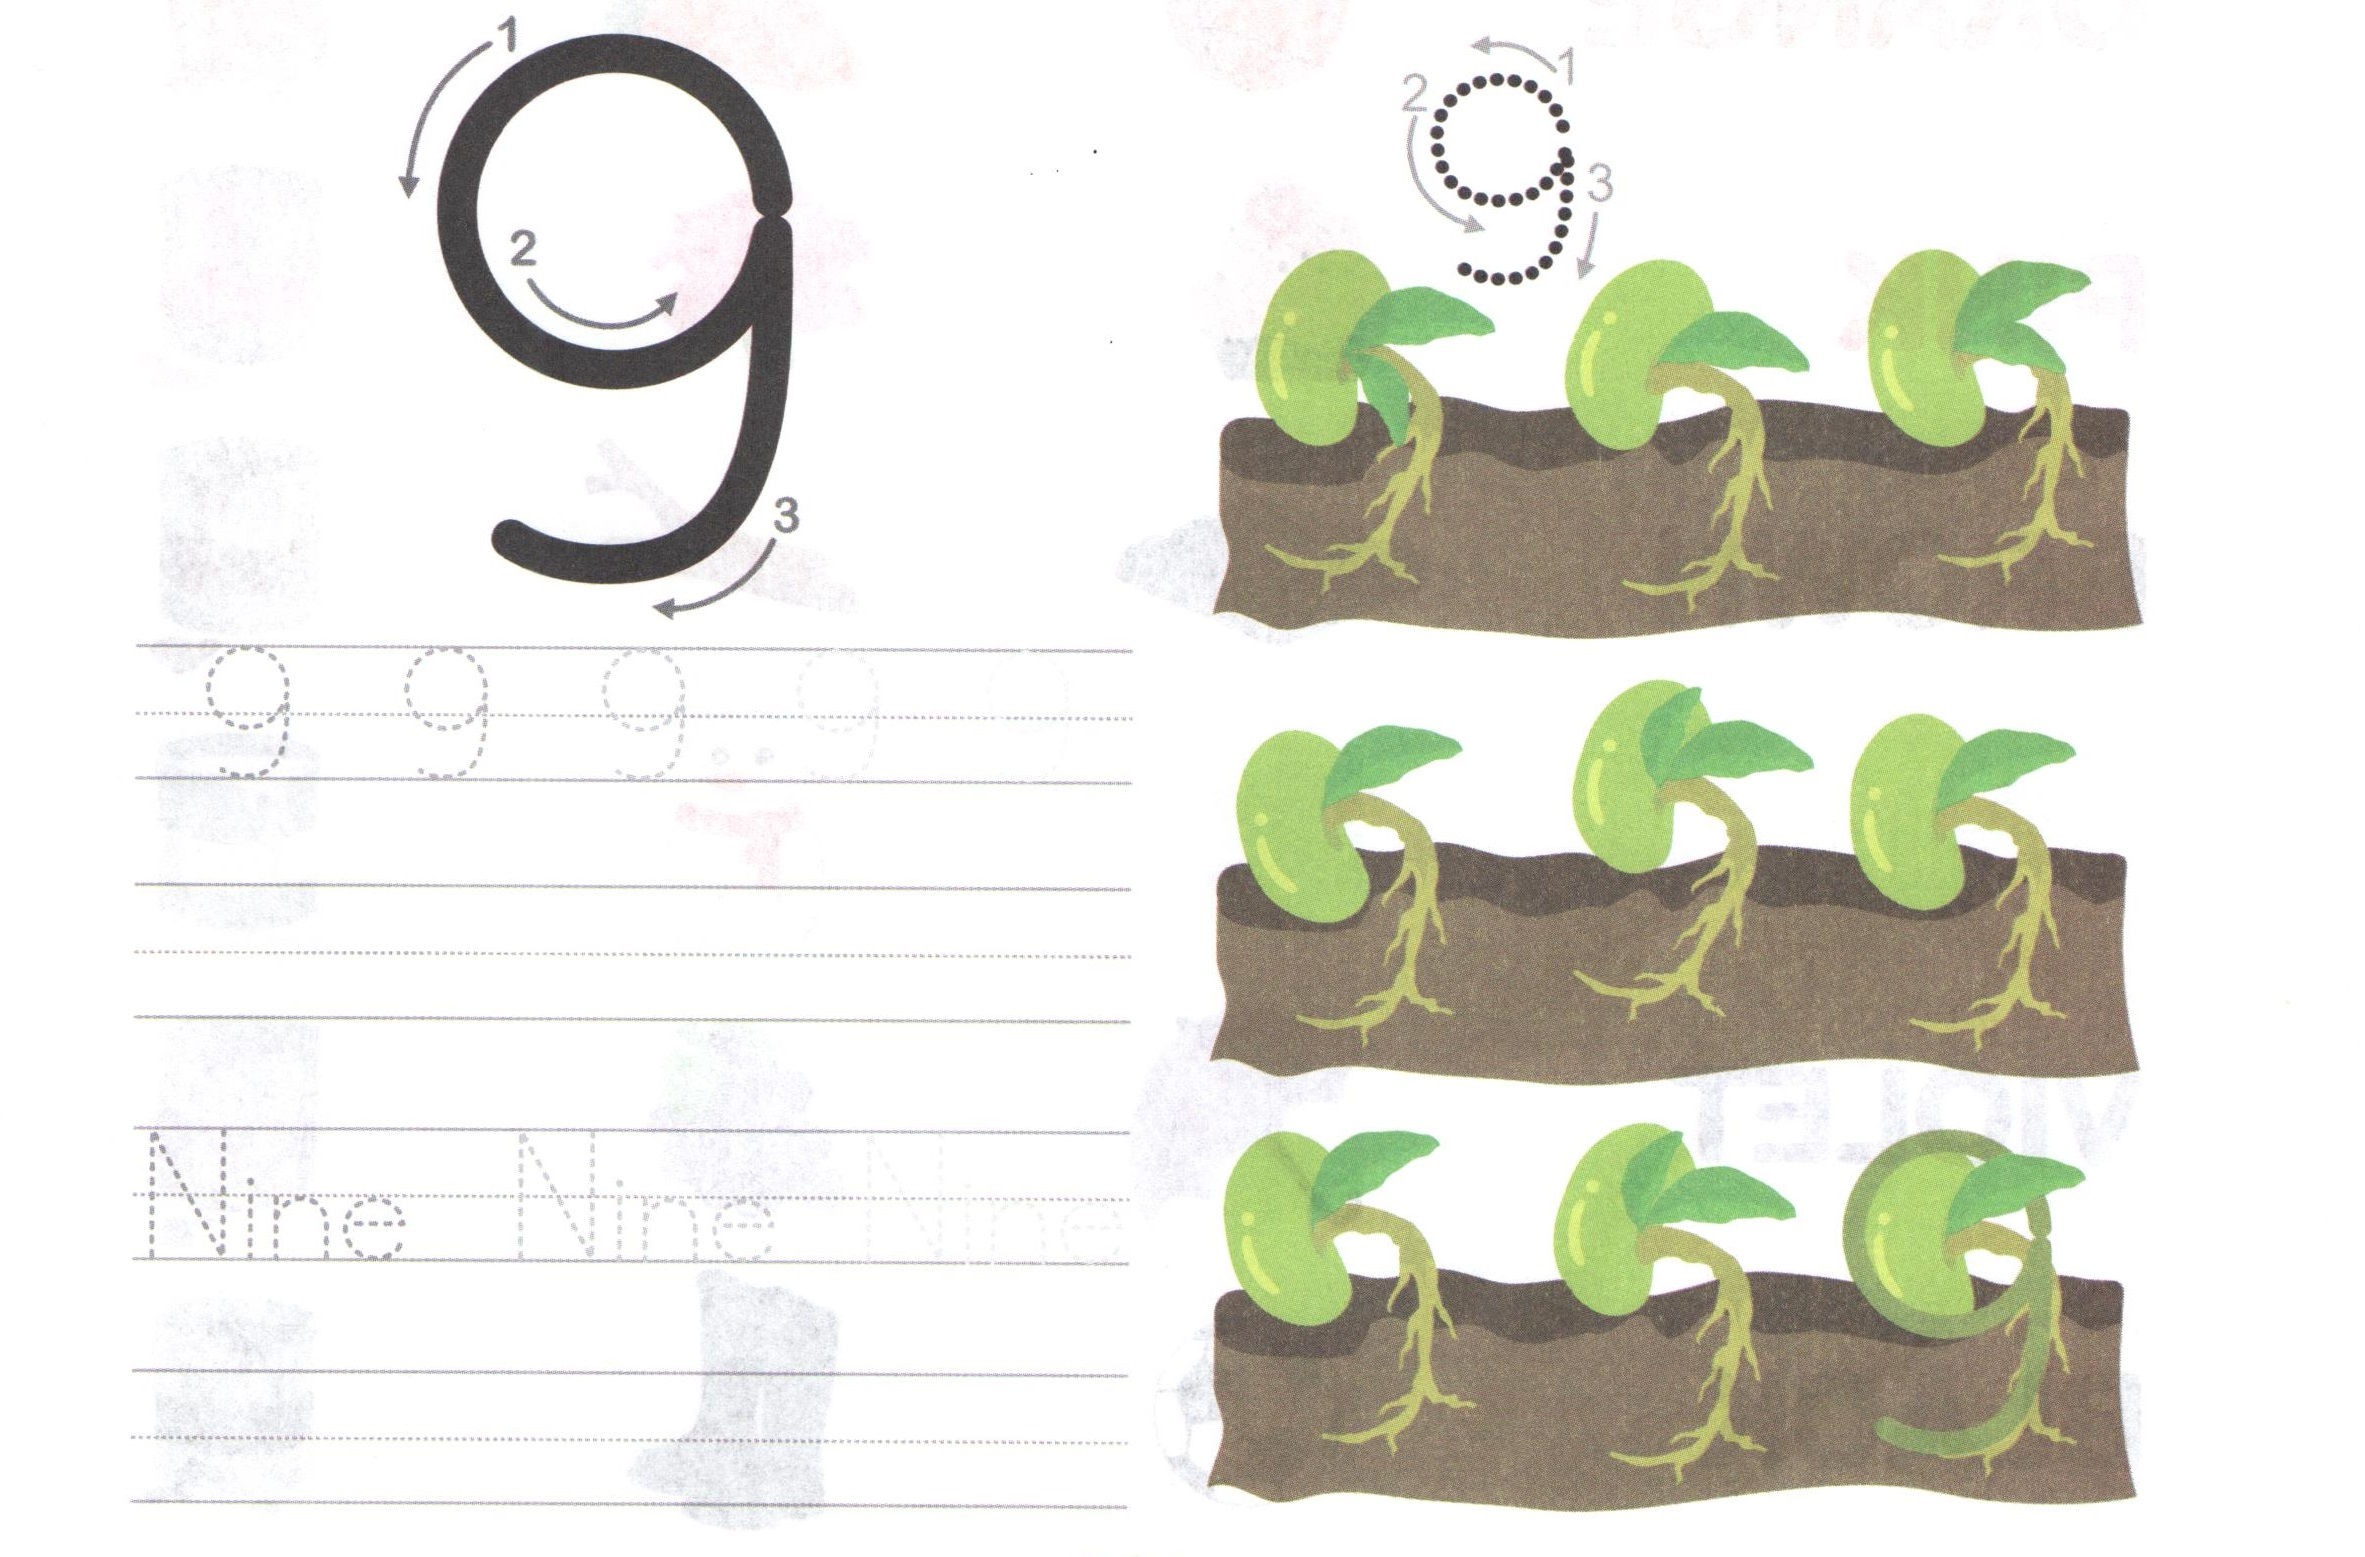 Nine 9 Worksheet For Learning Numbers